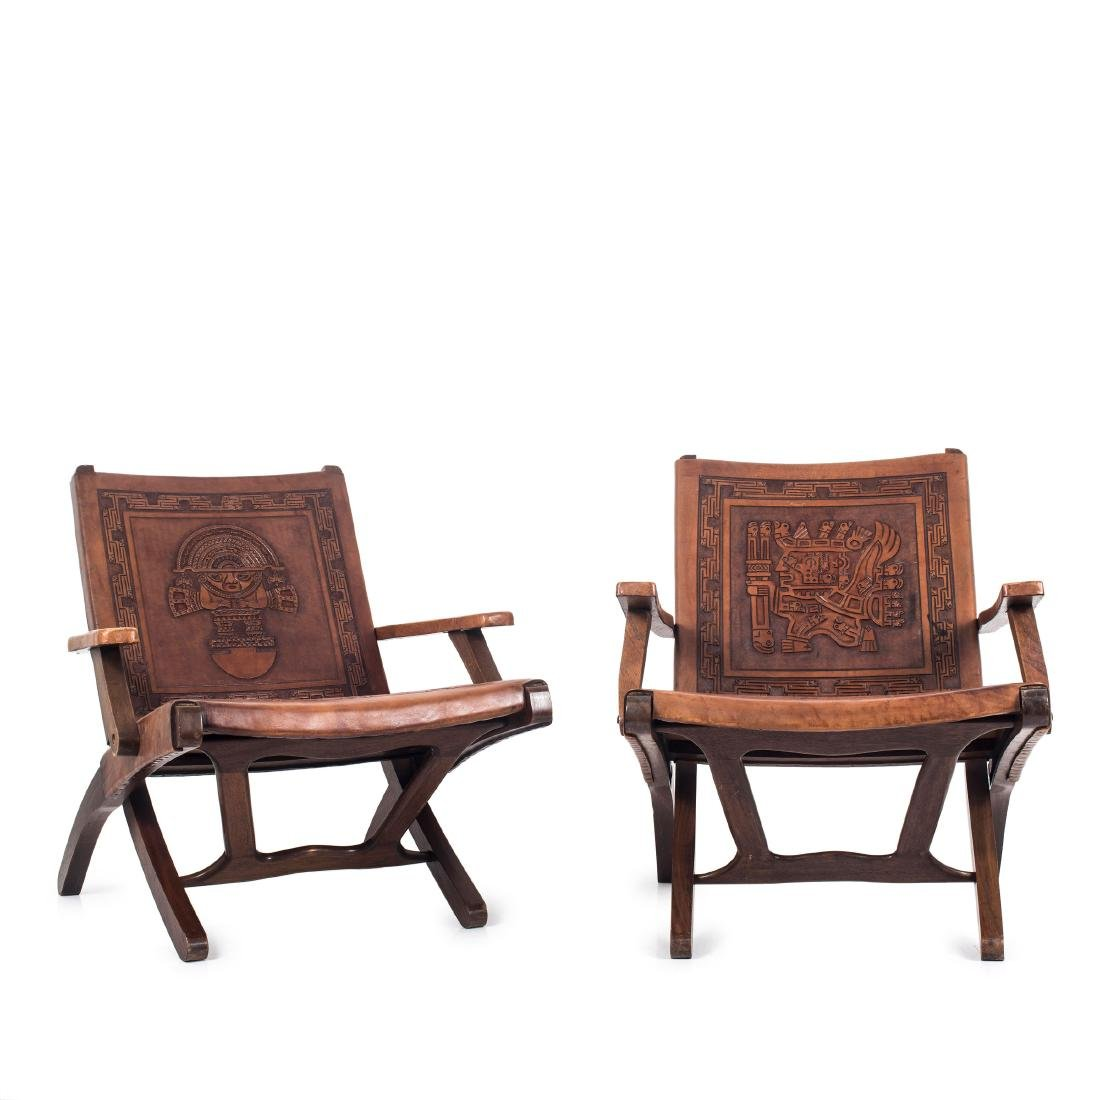 Two folding chairs, 1960s